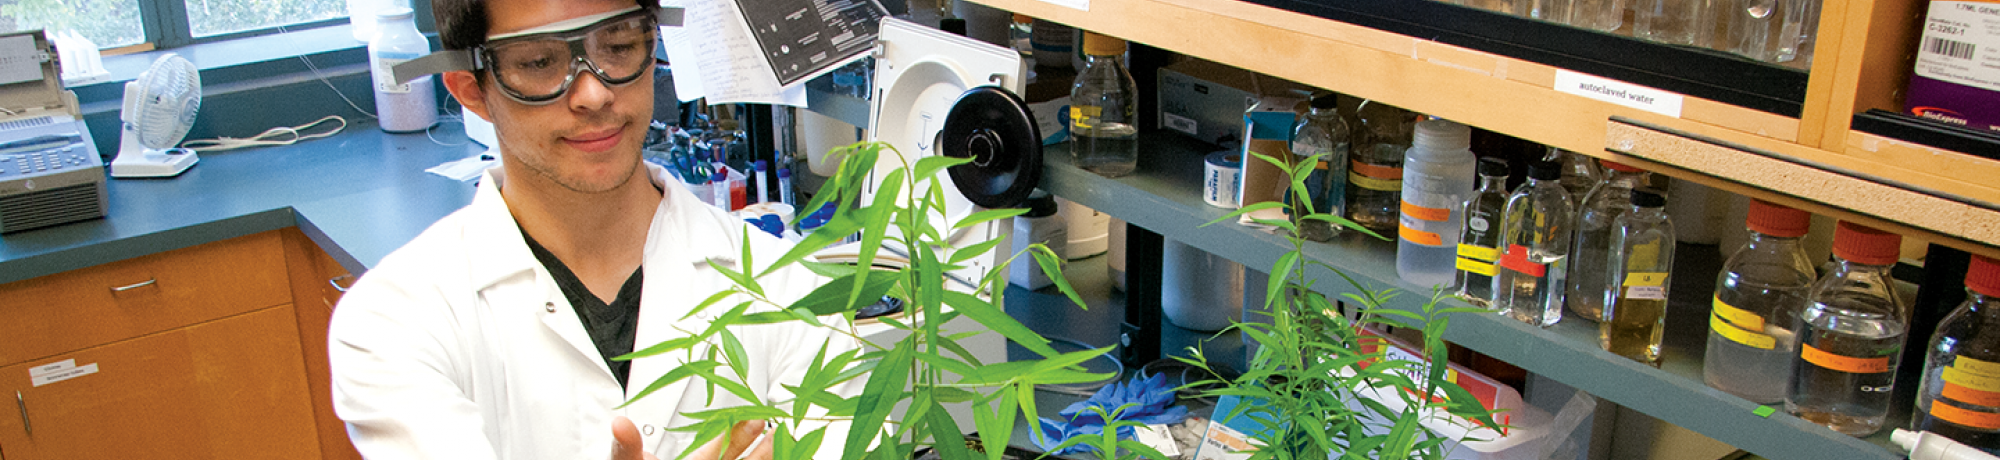 Student growing plants in a lab